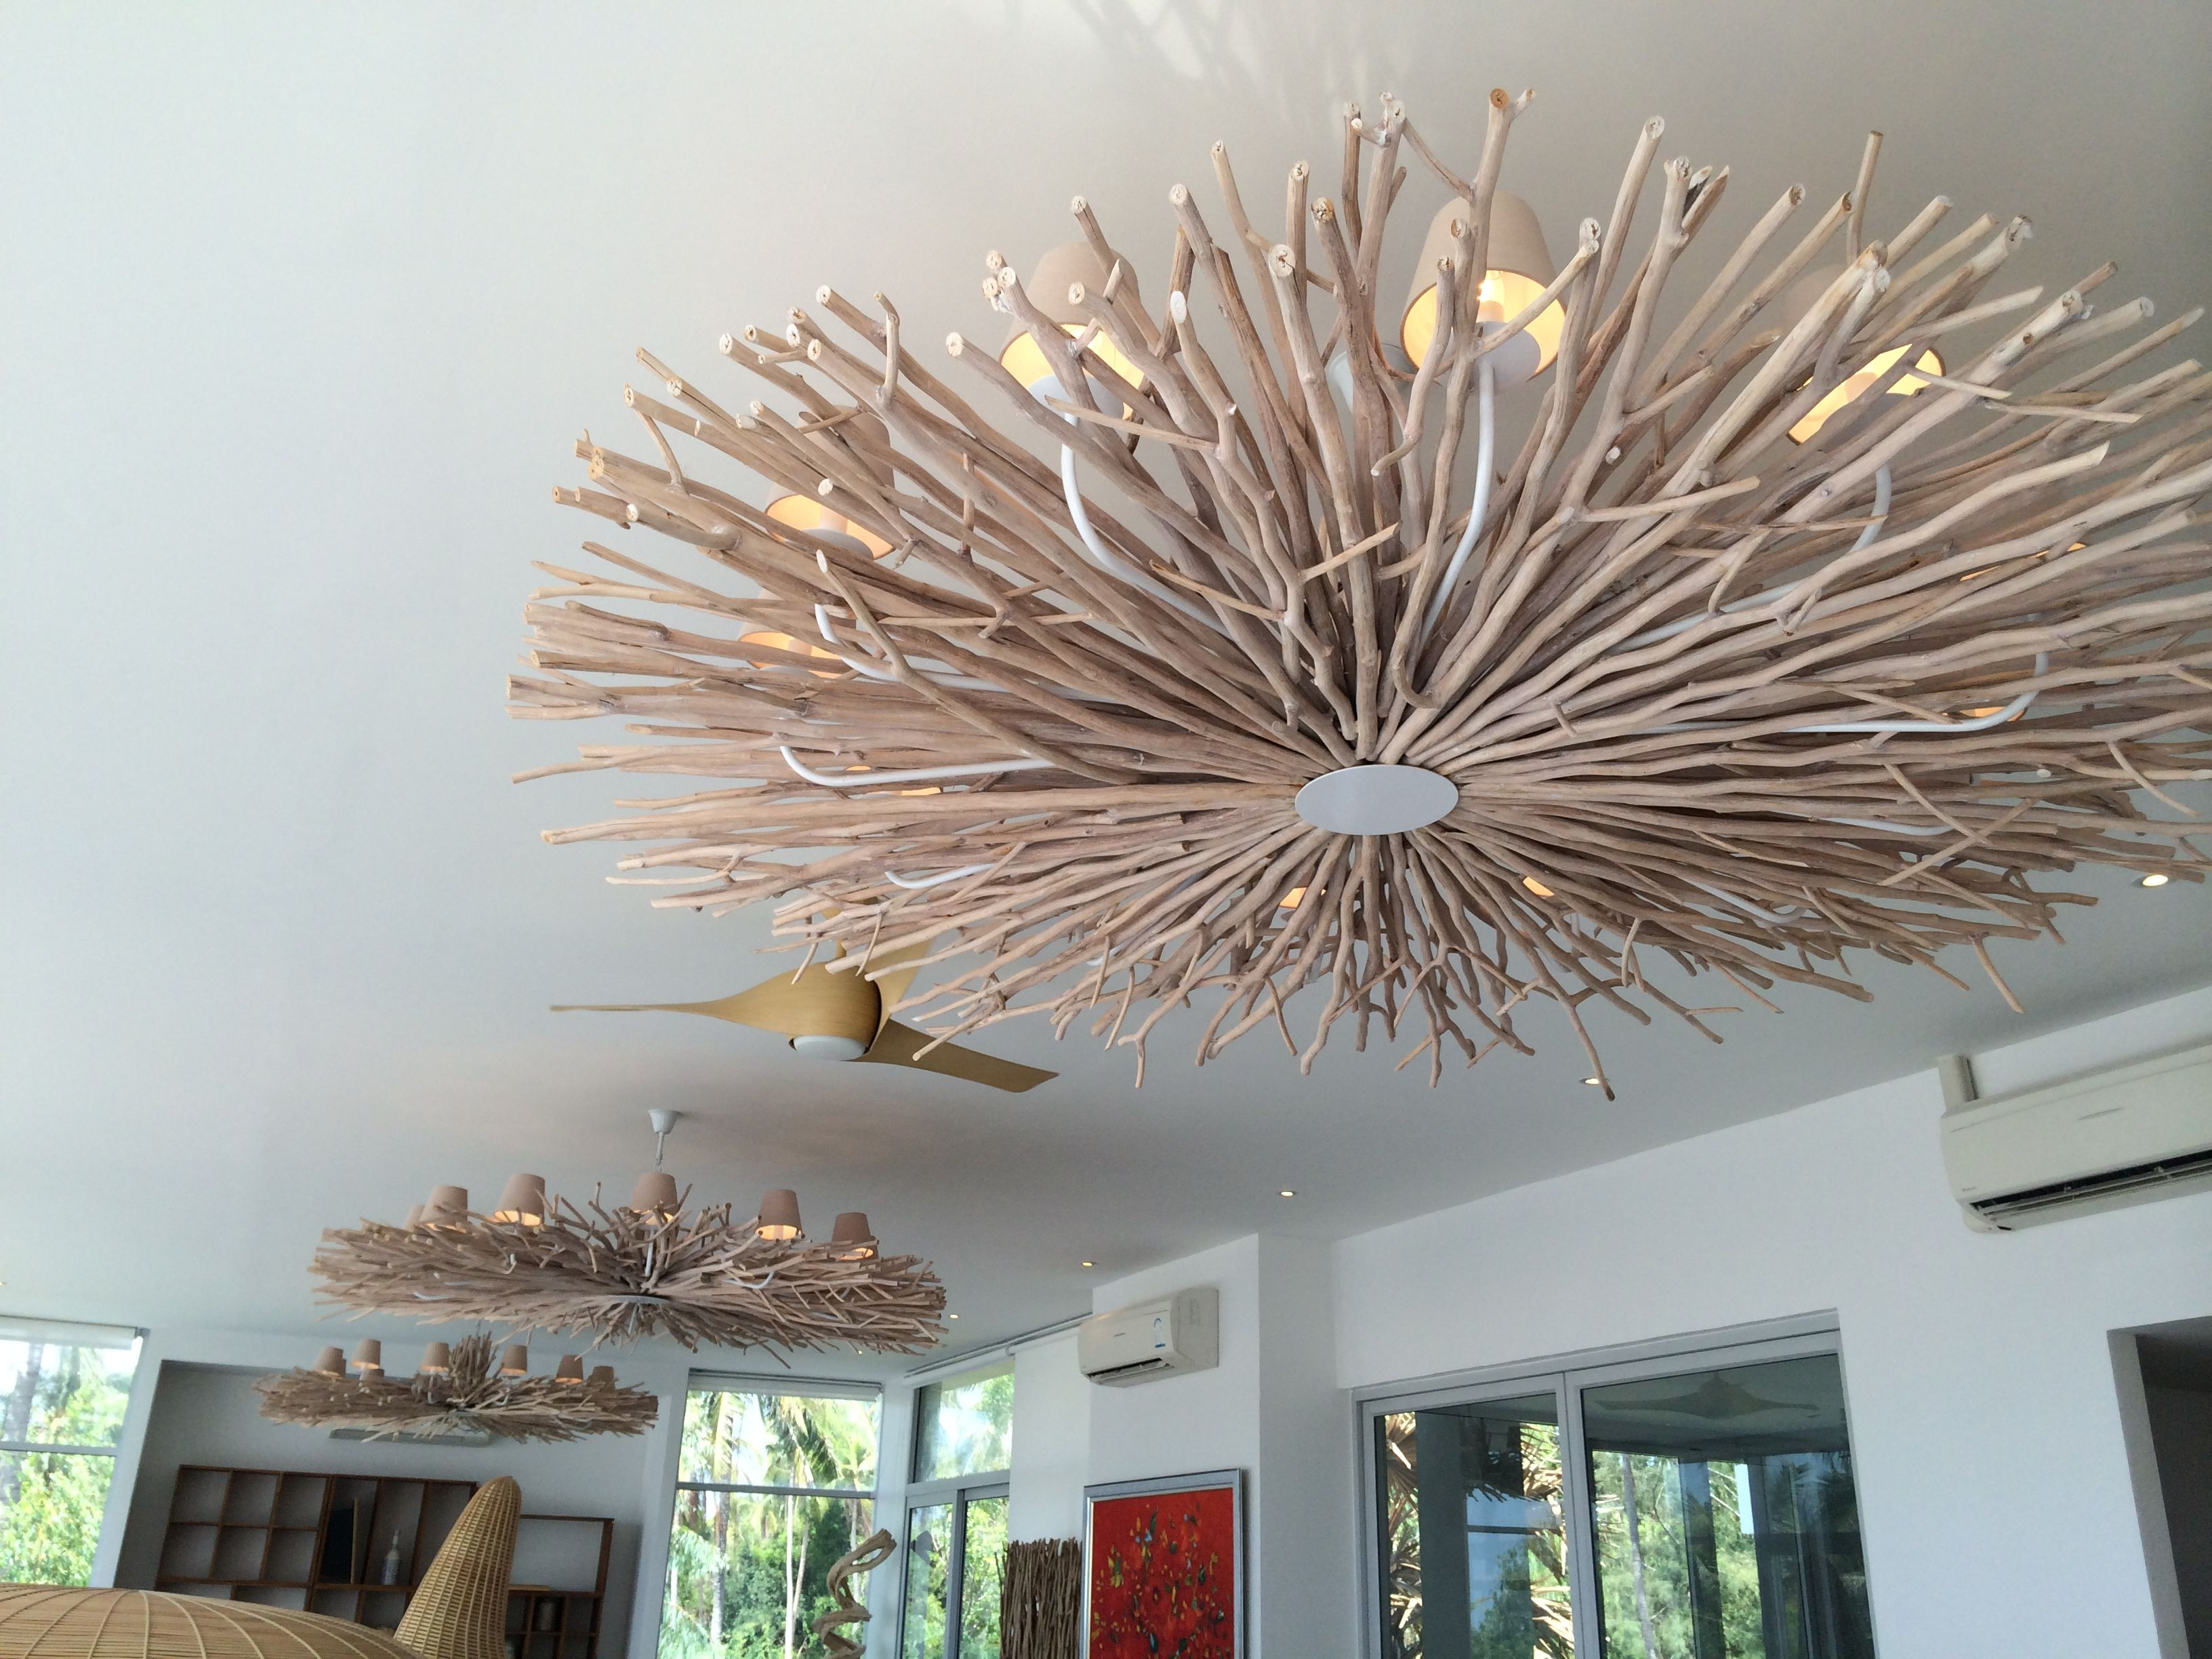 3 large branches chandelier in room setting Chandeliers from O